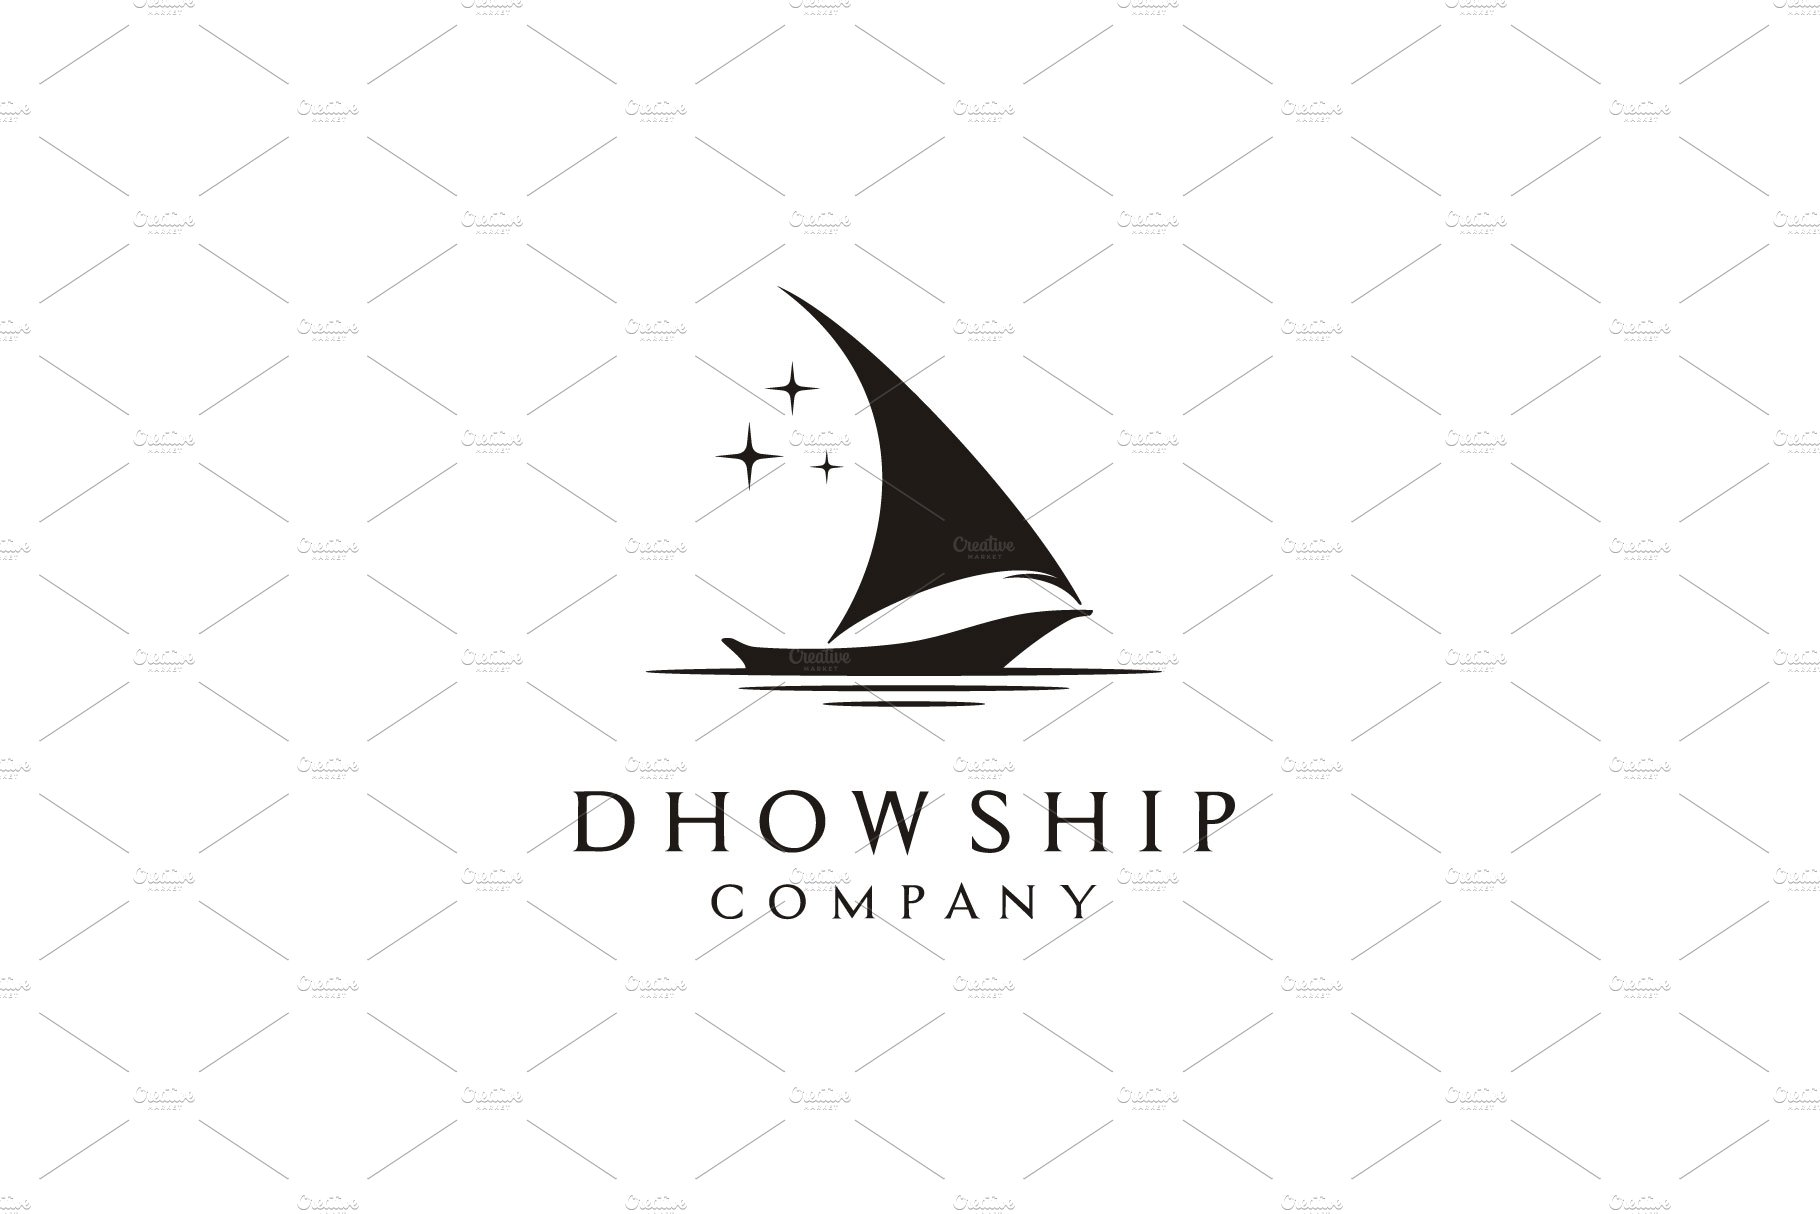 Traditional Ship Boat (Dhow) logo